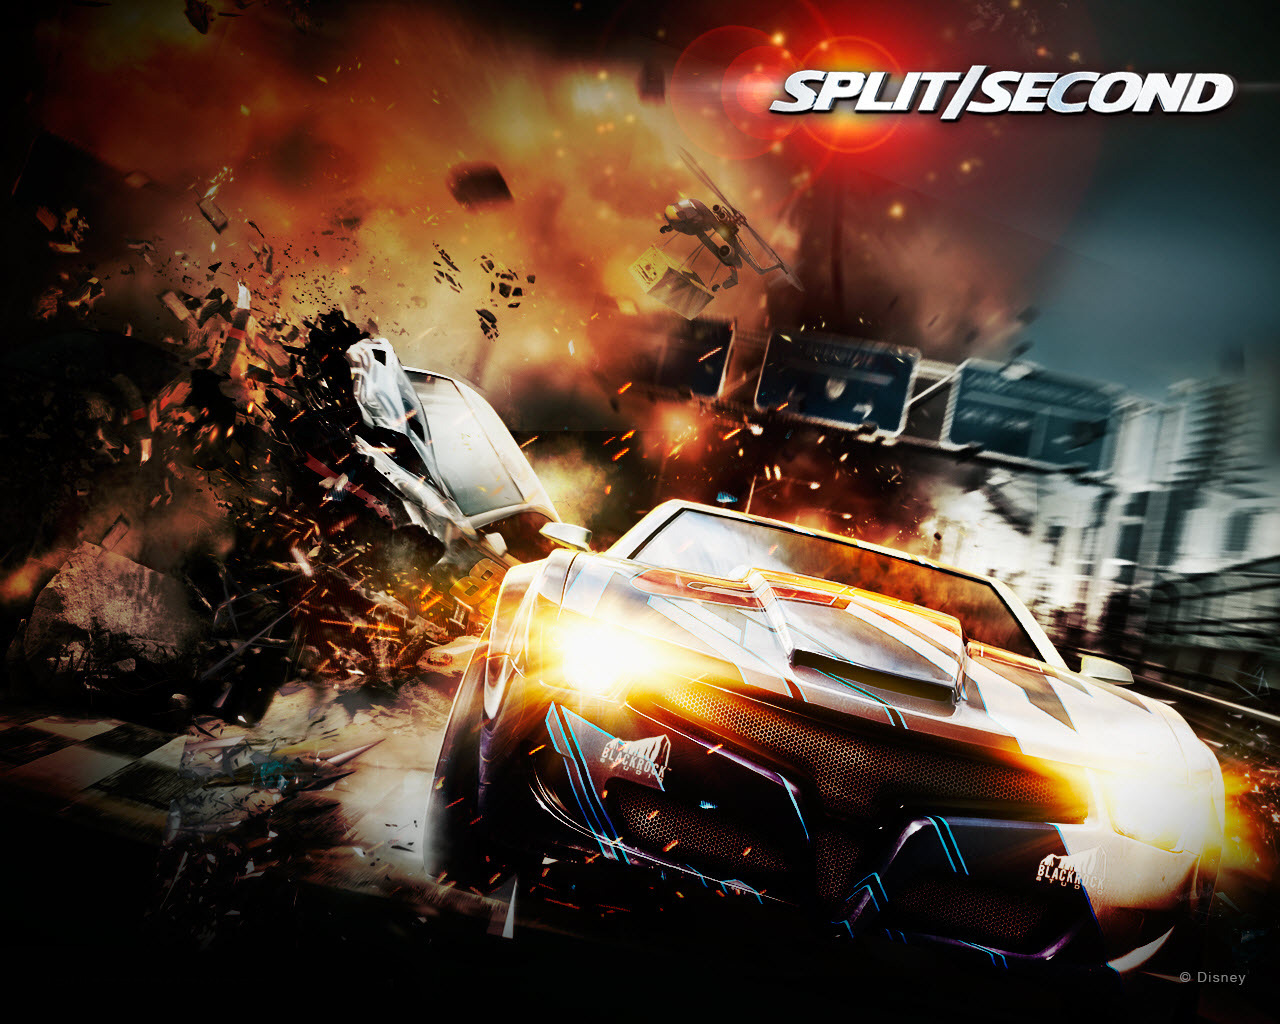 2010 Spilt Second Racing Game Wallpapers HD Wallpapers 1280x1024